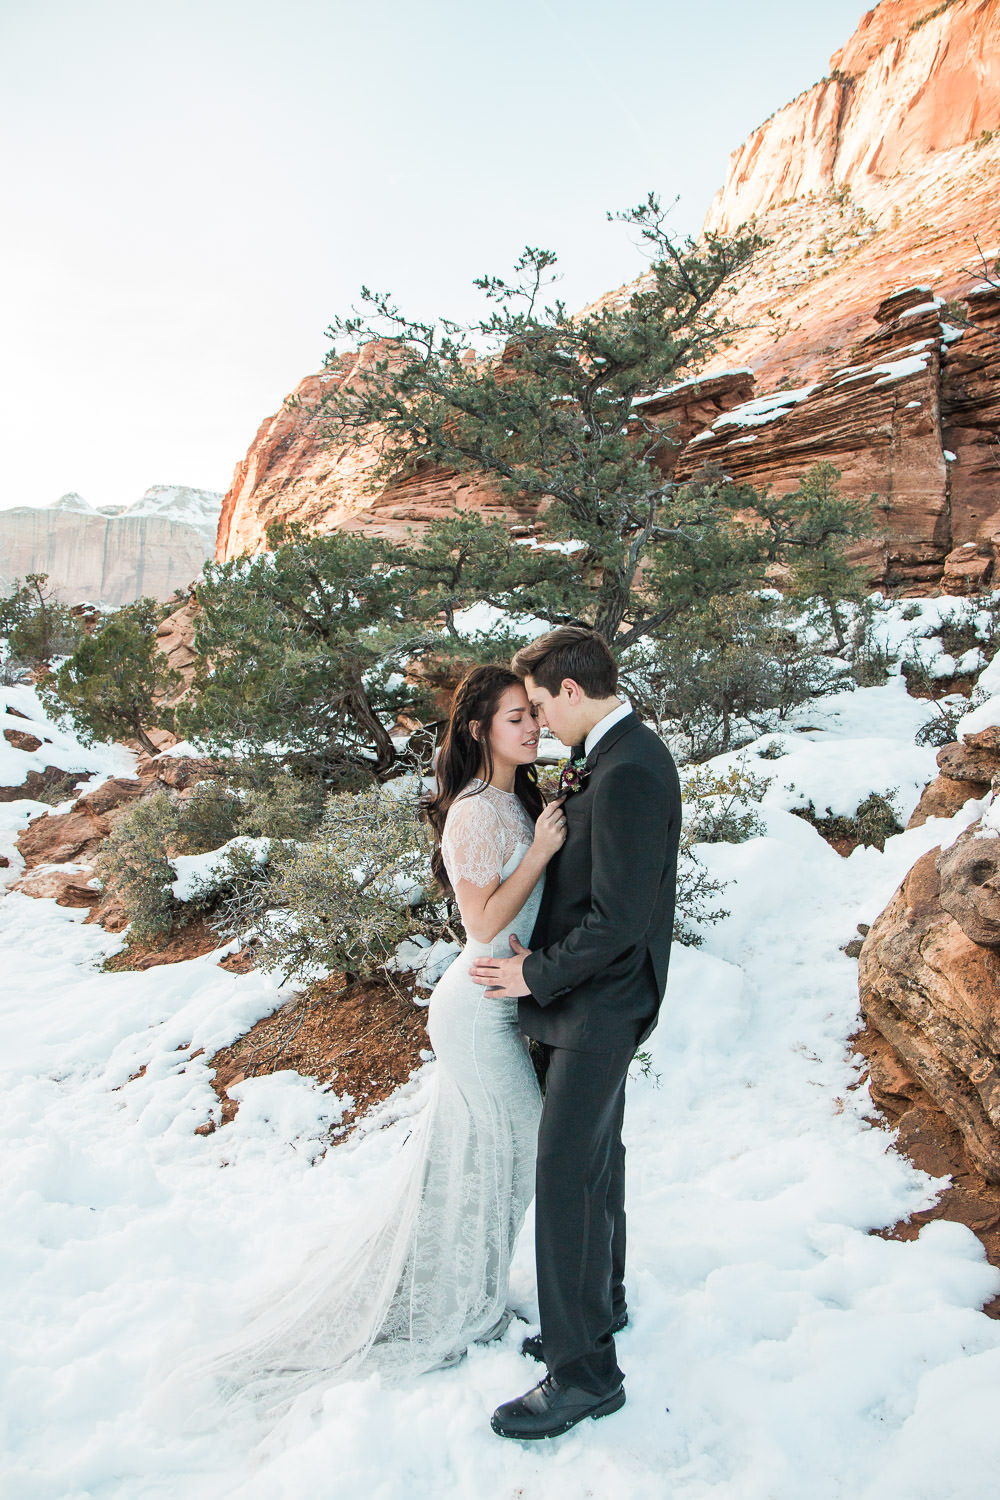 Destination Elopement in Zion National Park photographers